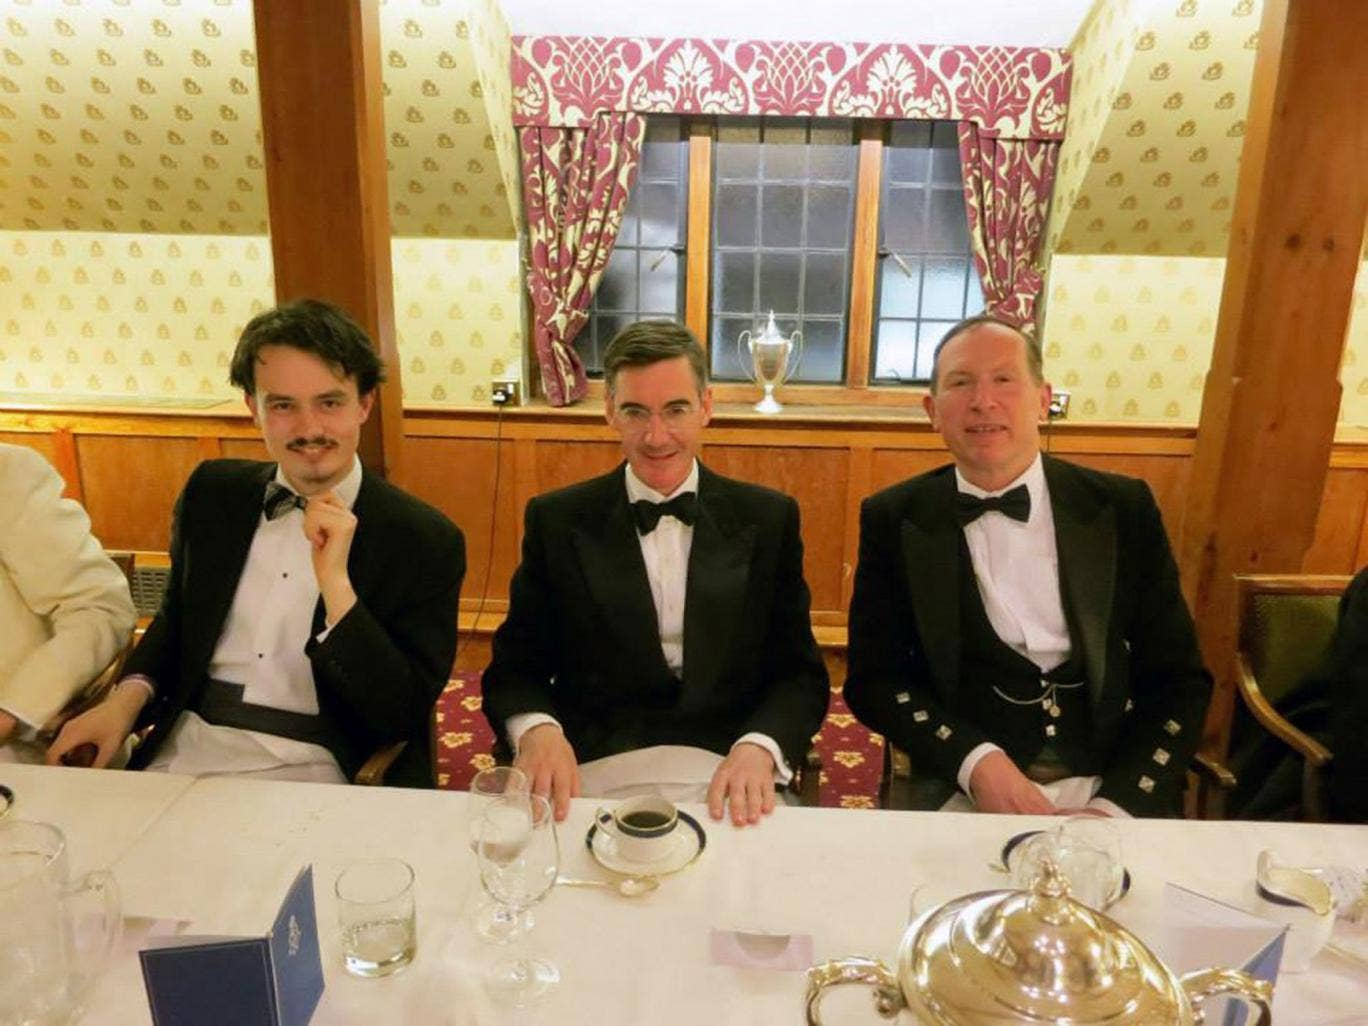 Left to right: Calum Rupert Heaton-Gent, Jacob Rees Mogg and Gregory Lauder- Frost, who says he wants black people deported